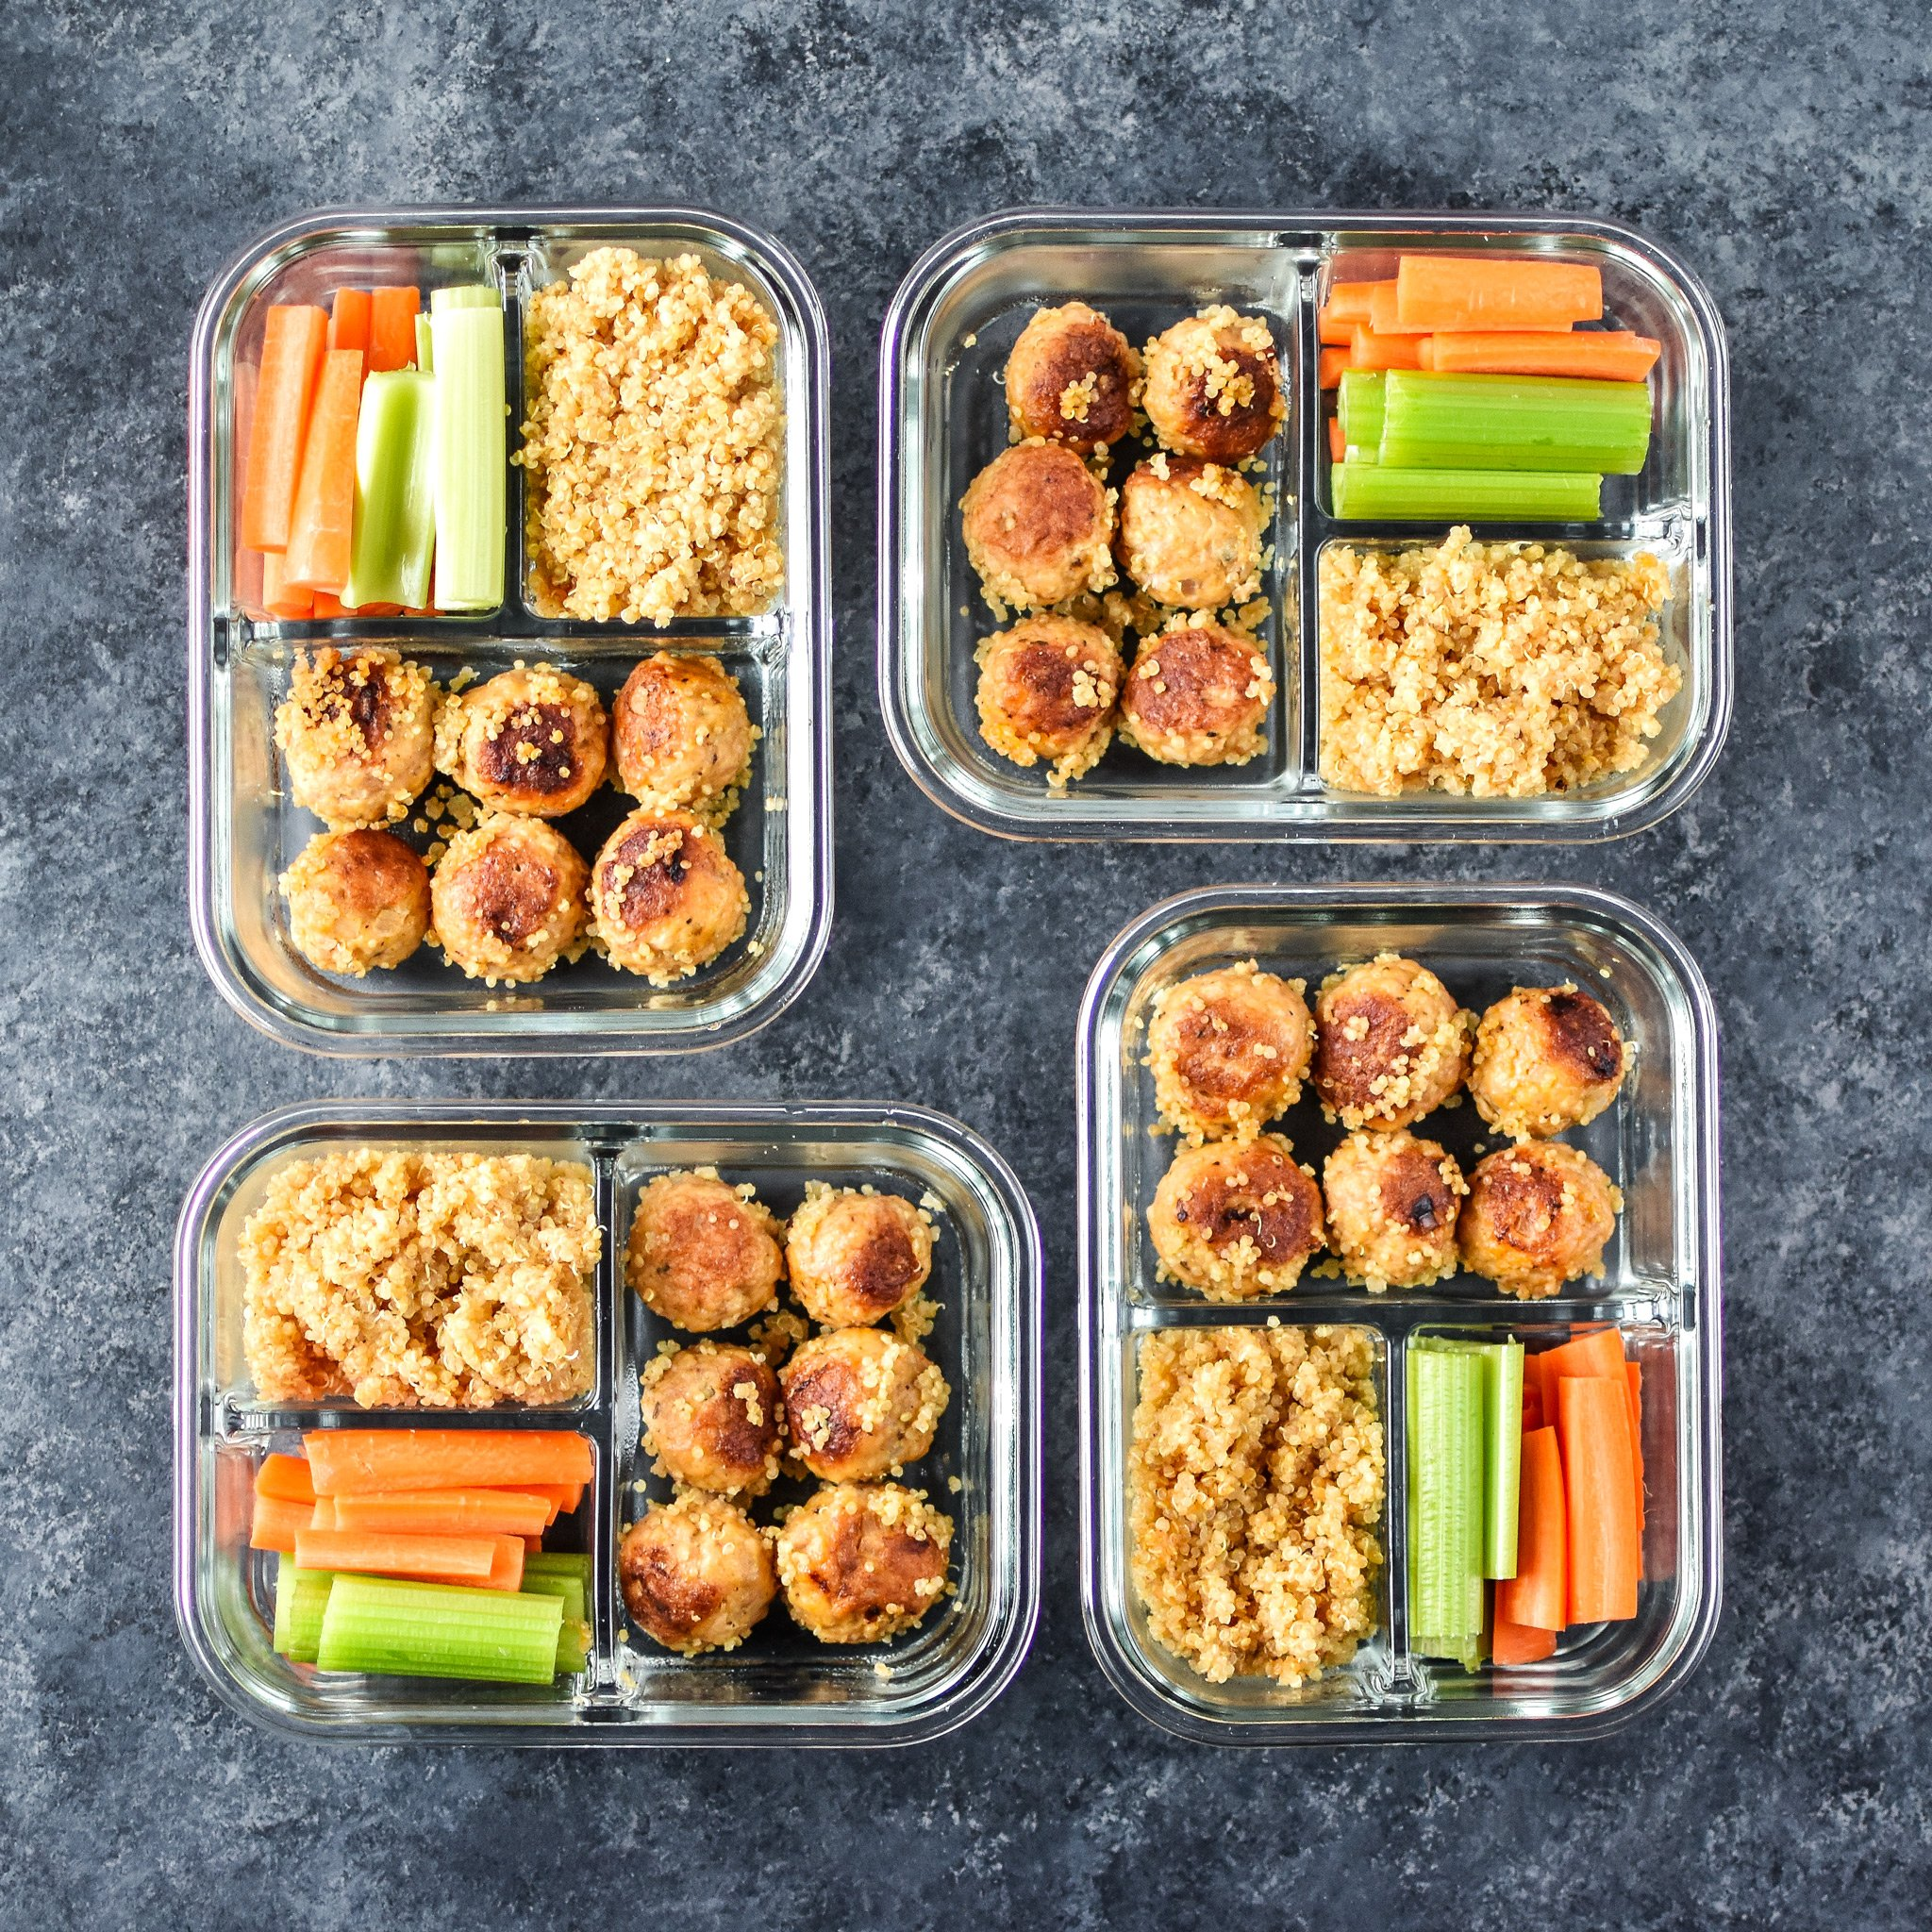 Four meal prep meatballs, quinoa and raw veggies lunches in glass containers.